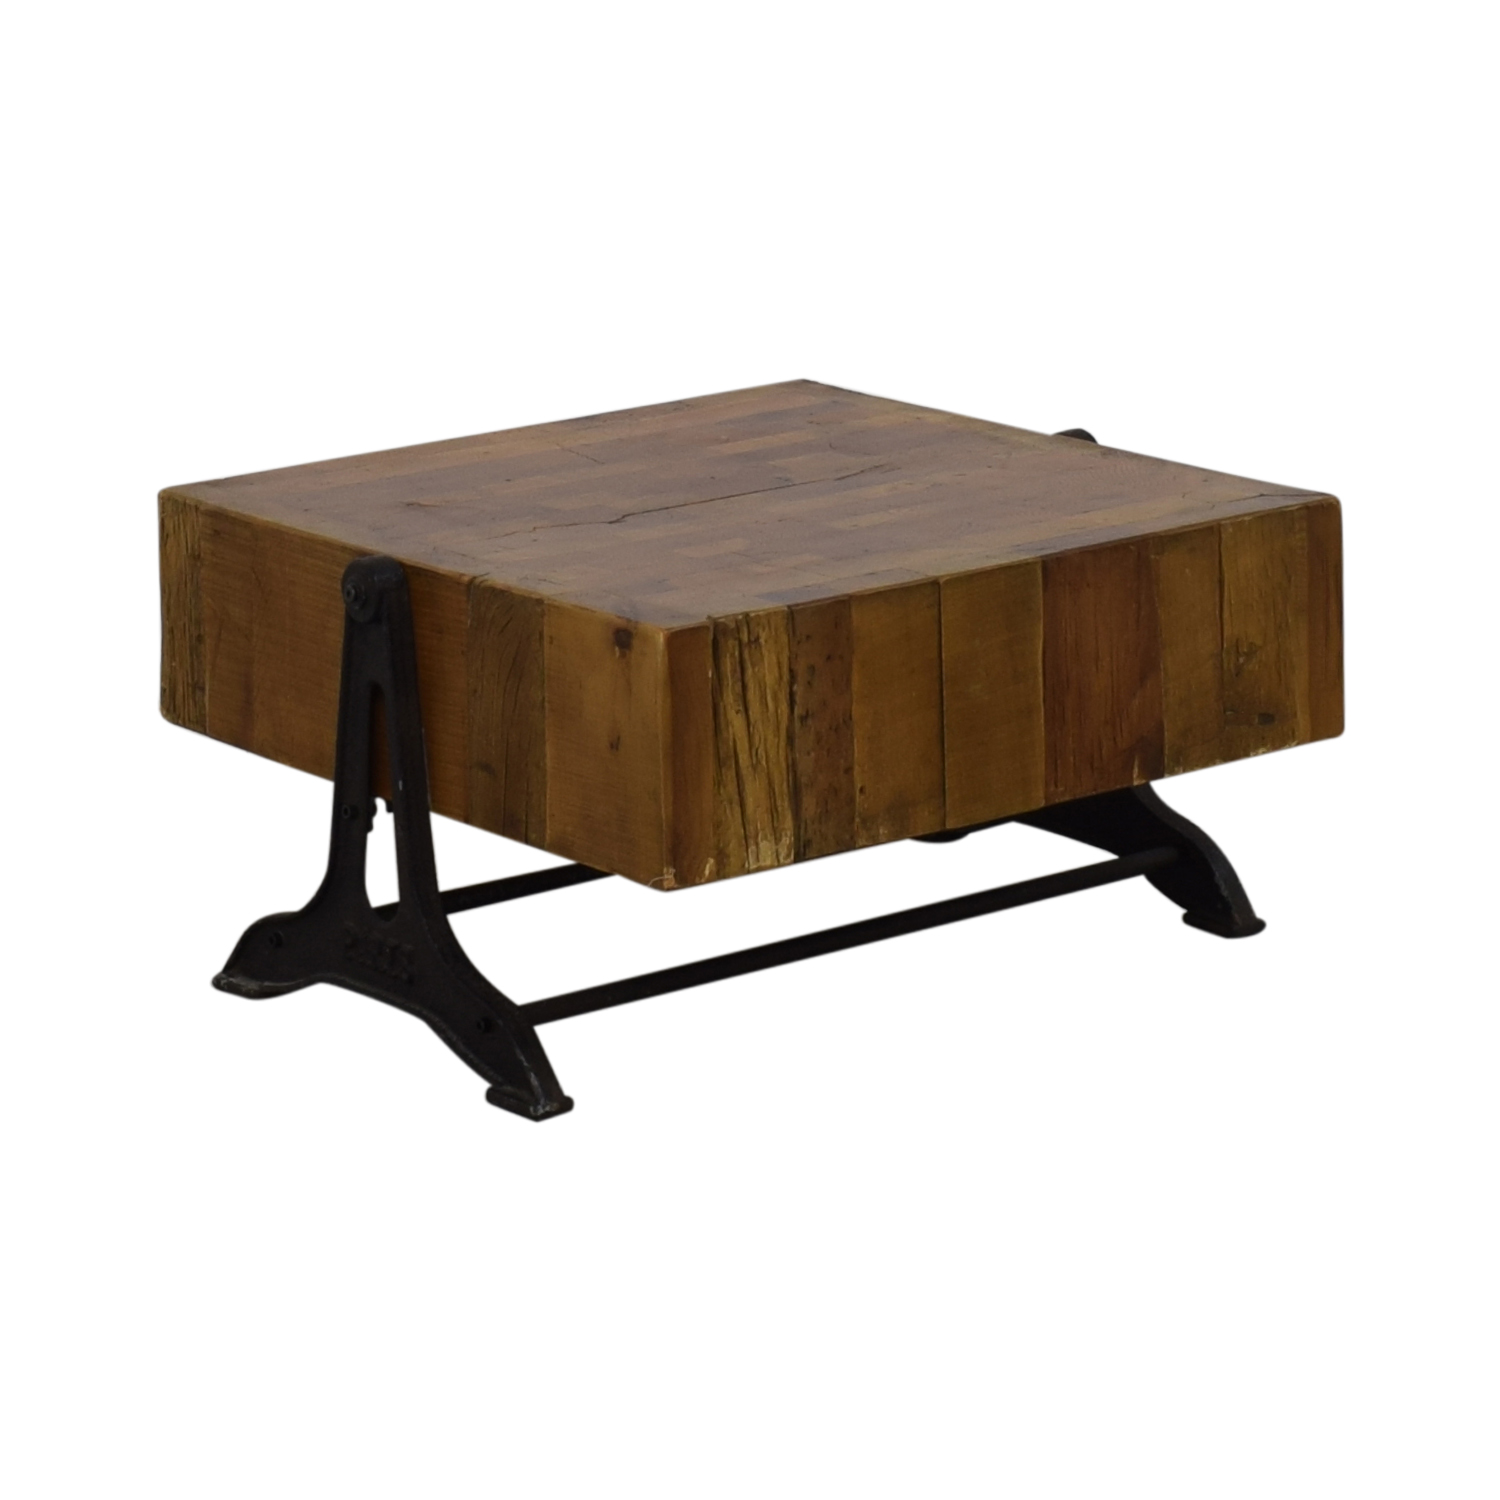 Restoration Hardware Restoration Hardware Reclaimed Russian Industrial Coffee Table used